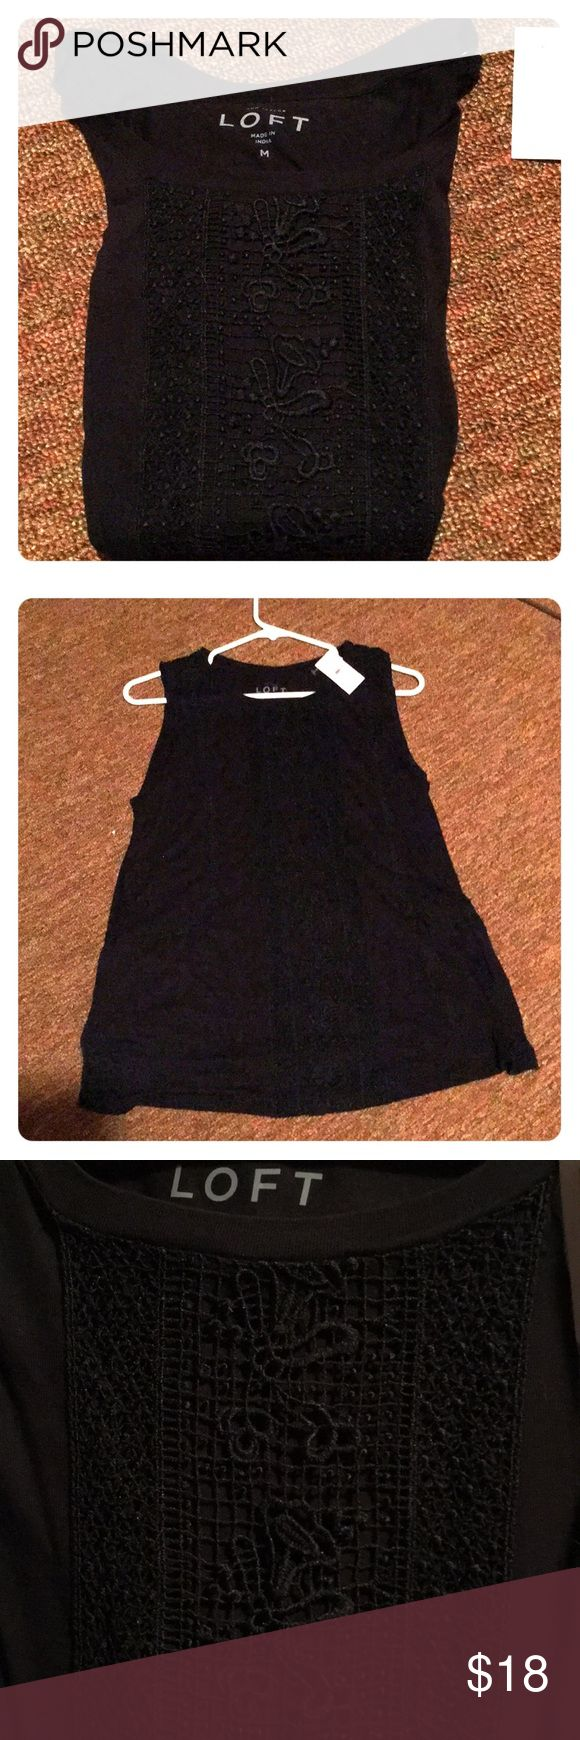 "NWT ""Ann Taylor"" LOFT Black Top, Size Medium Brand New With Tags, Authentic ""Ann Taylor"" LOFT Black sleeveless Top in Size Medium. Made of 100% Rayon. Comes from a smoke free room. Anne Taylor Loft Tops"